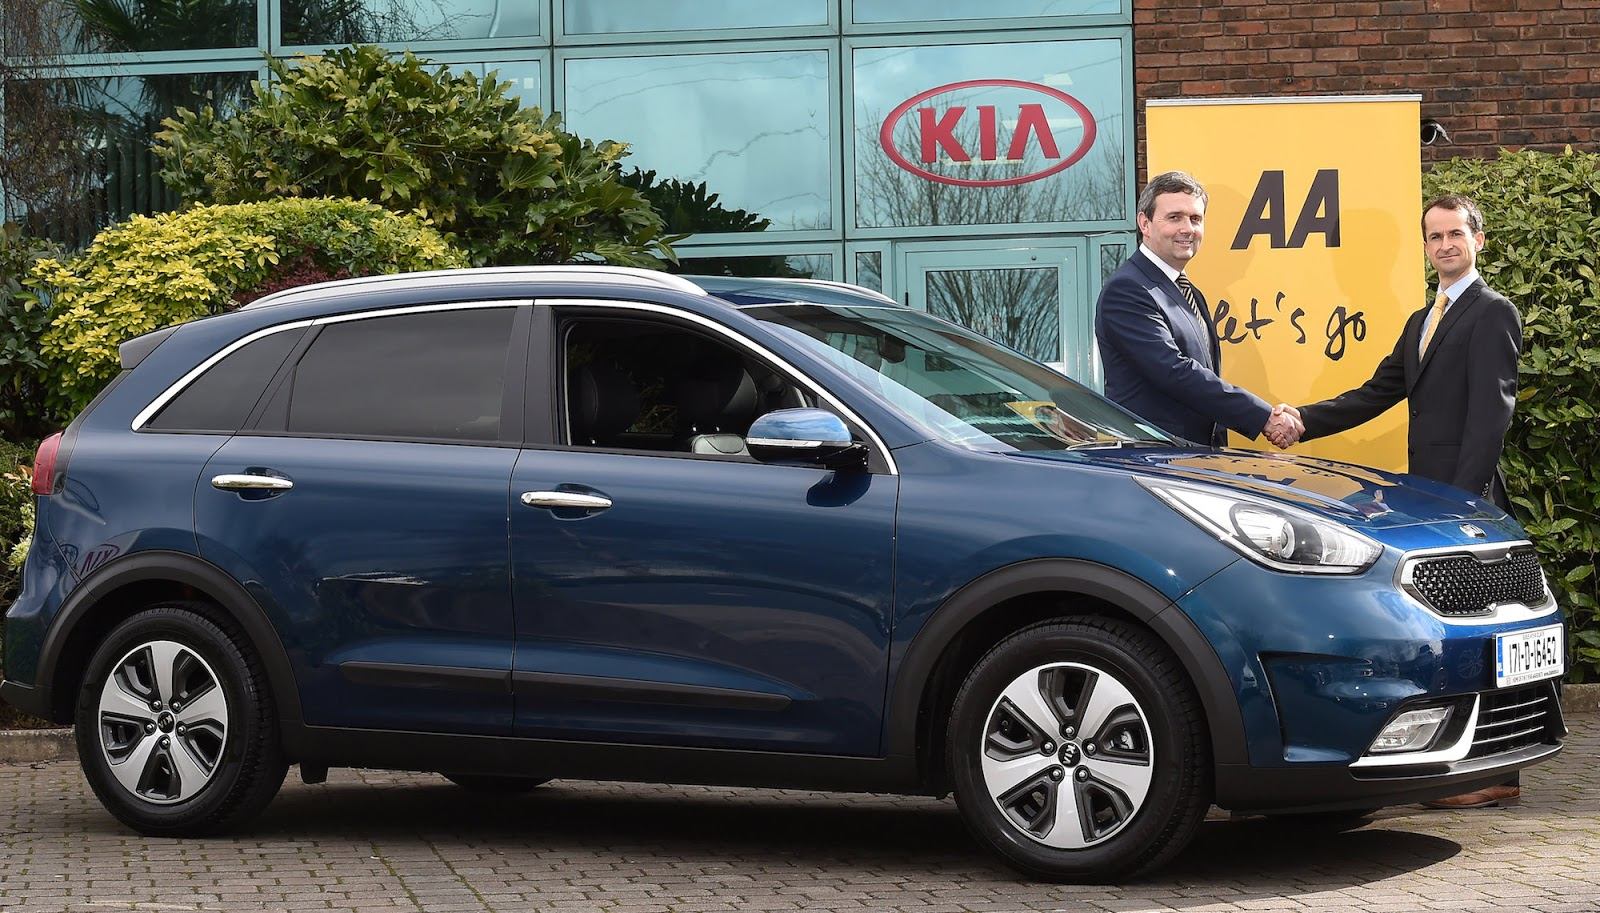 Irish Car Travel Magazine Aa Ireland And Kia Partner For Hybrid Care